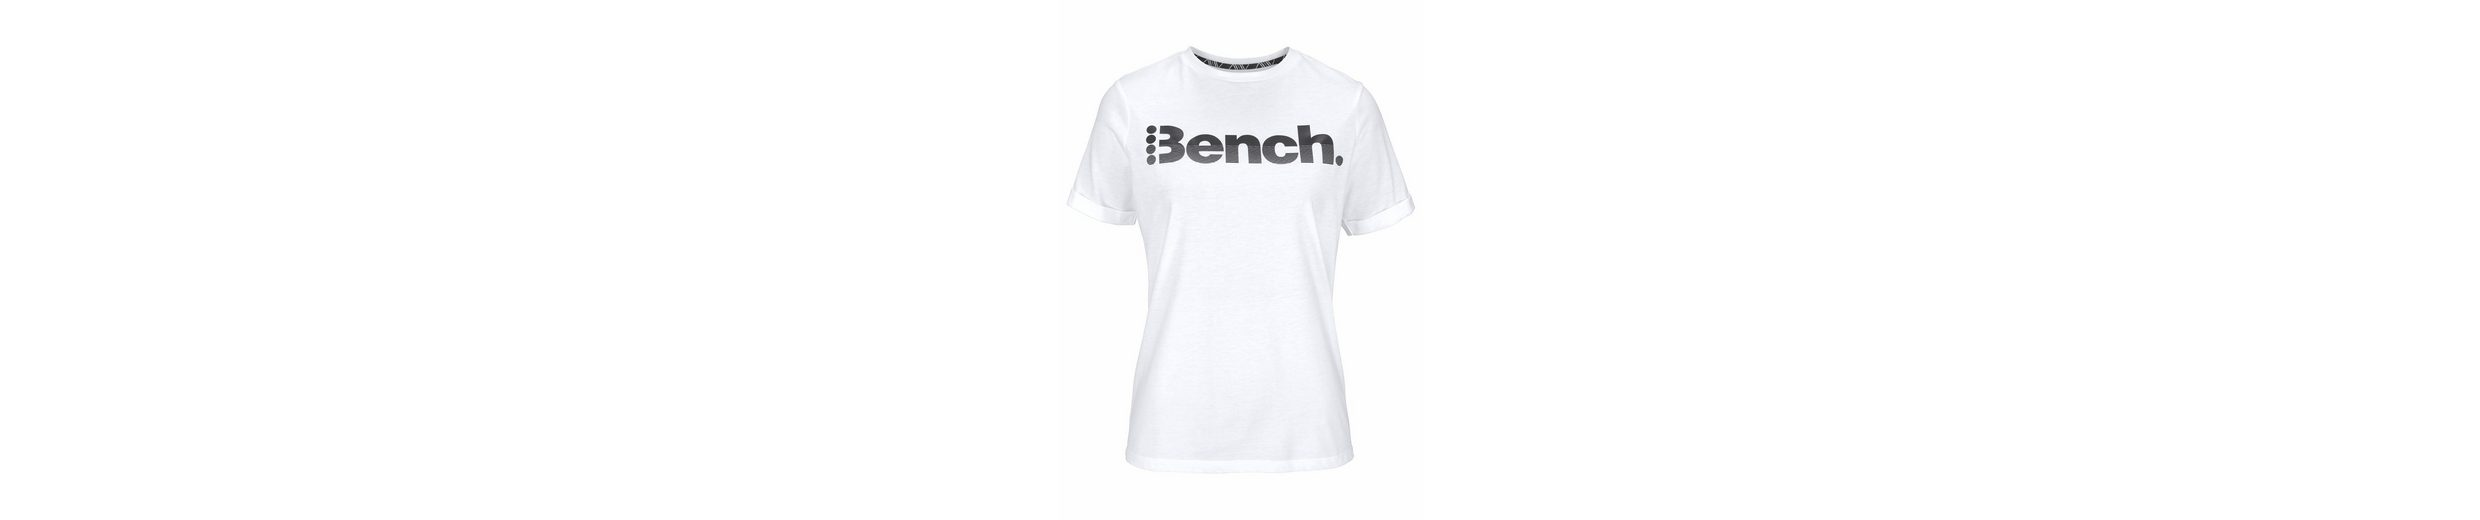 Bench Shirt T Bench Performance Performance TEE CORP T Shirt rwqY4FPxgr